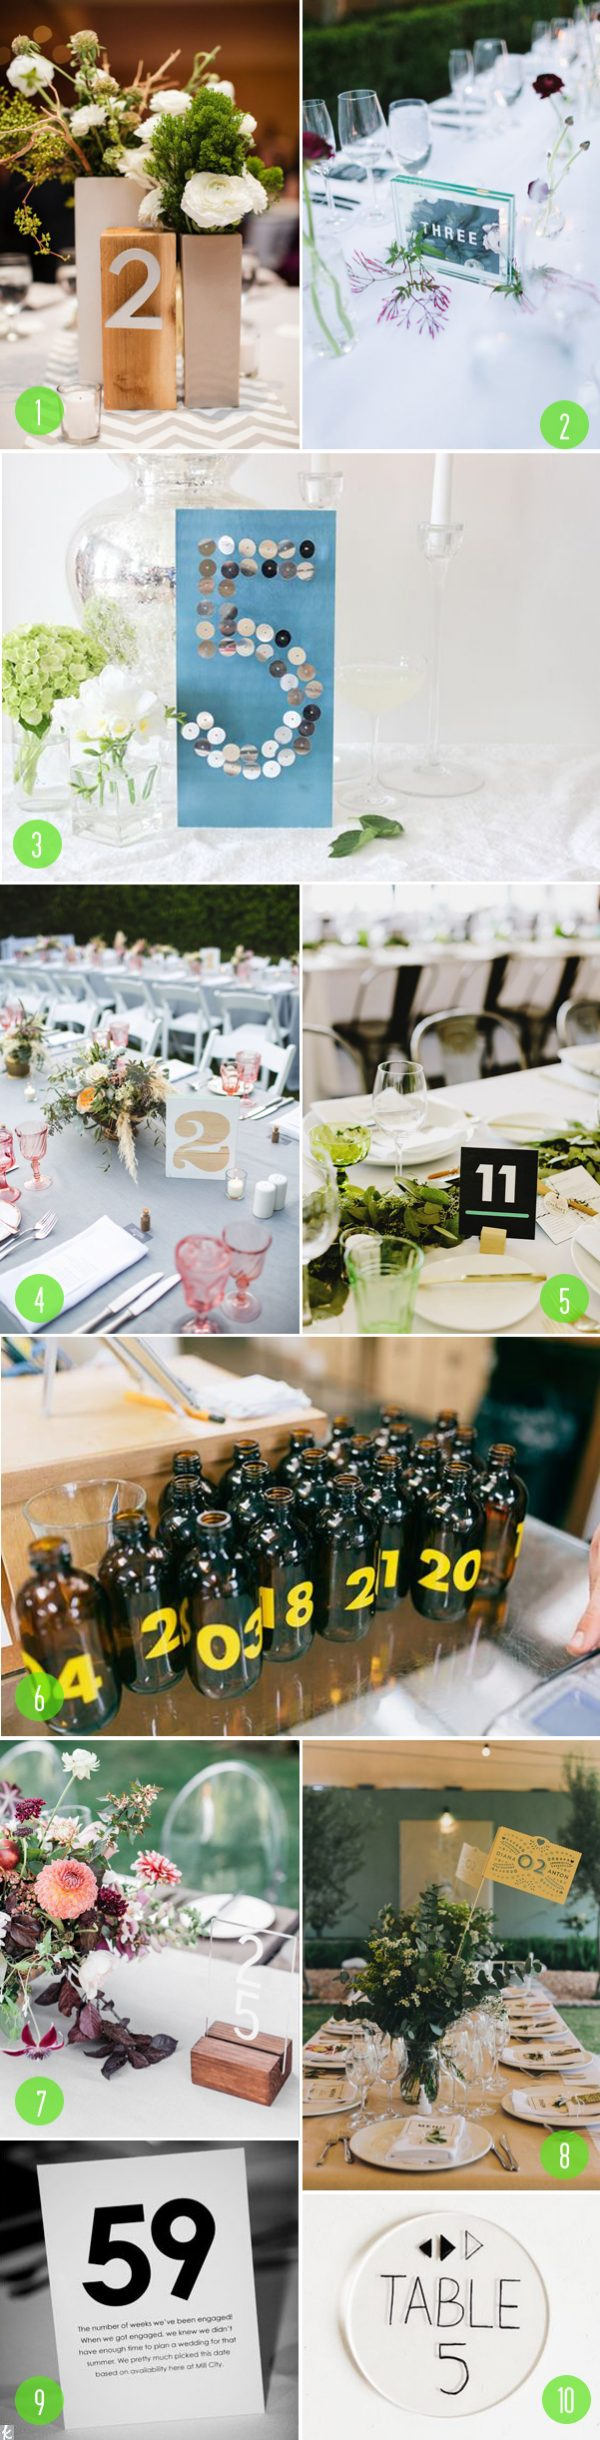 table numbers | 2